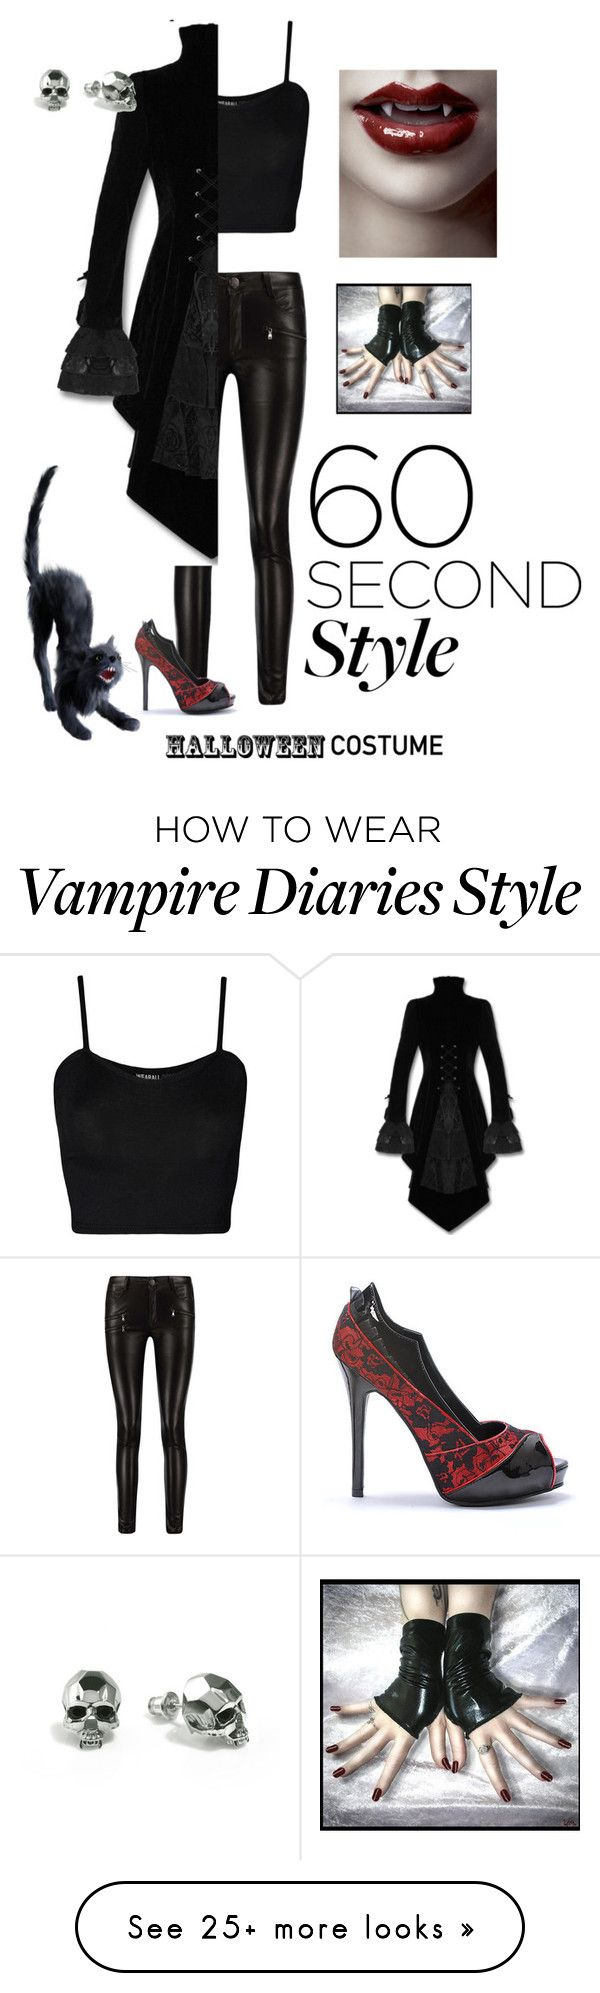 """vampire costume"" by samaramahone1d on Polyvore featuring WearAll and Kasun"